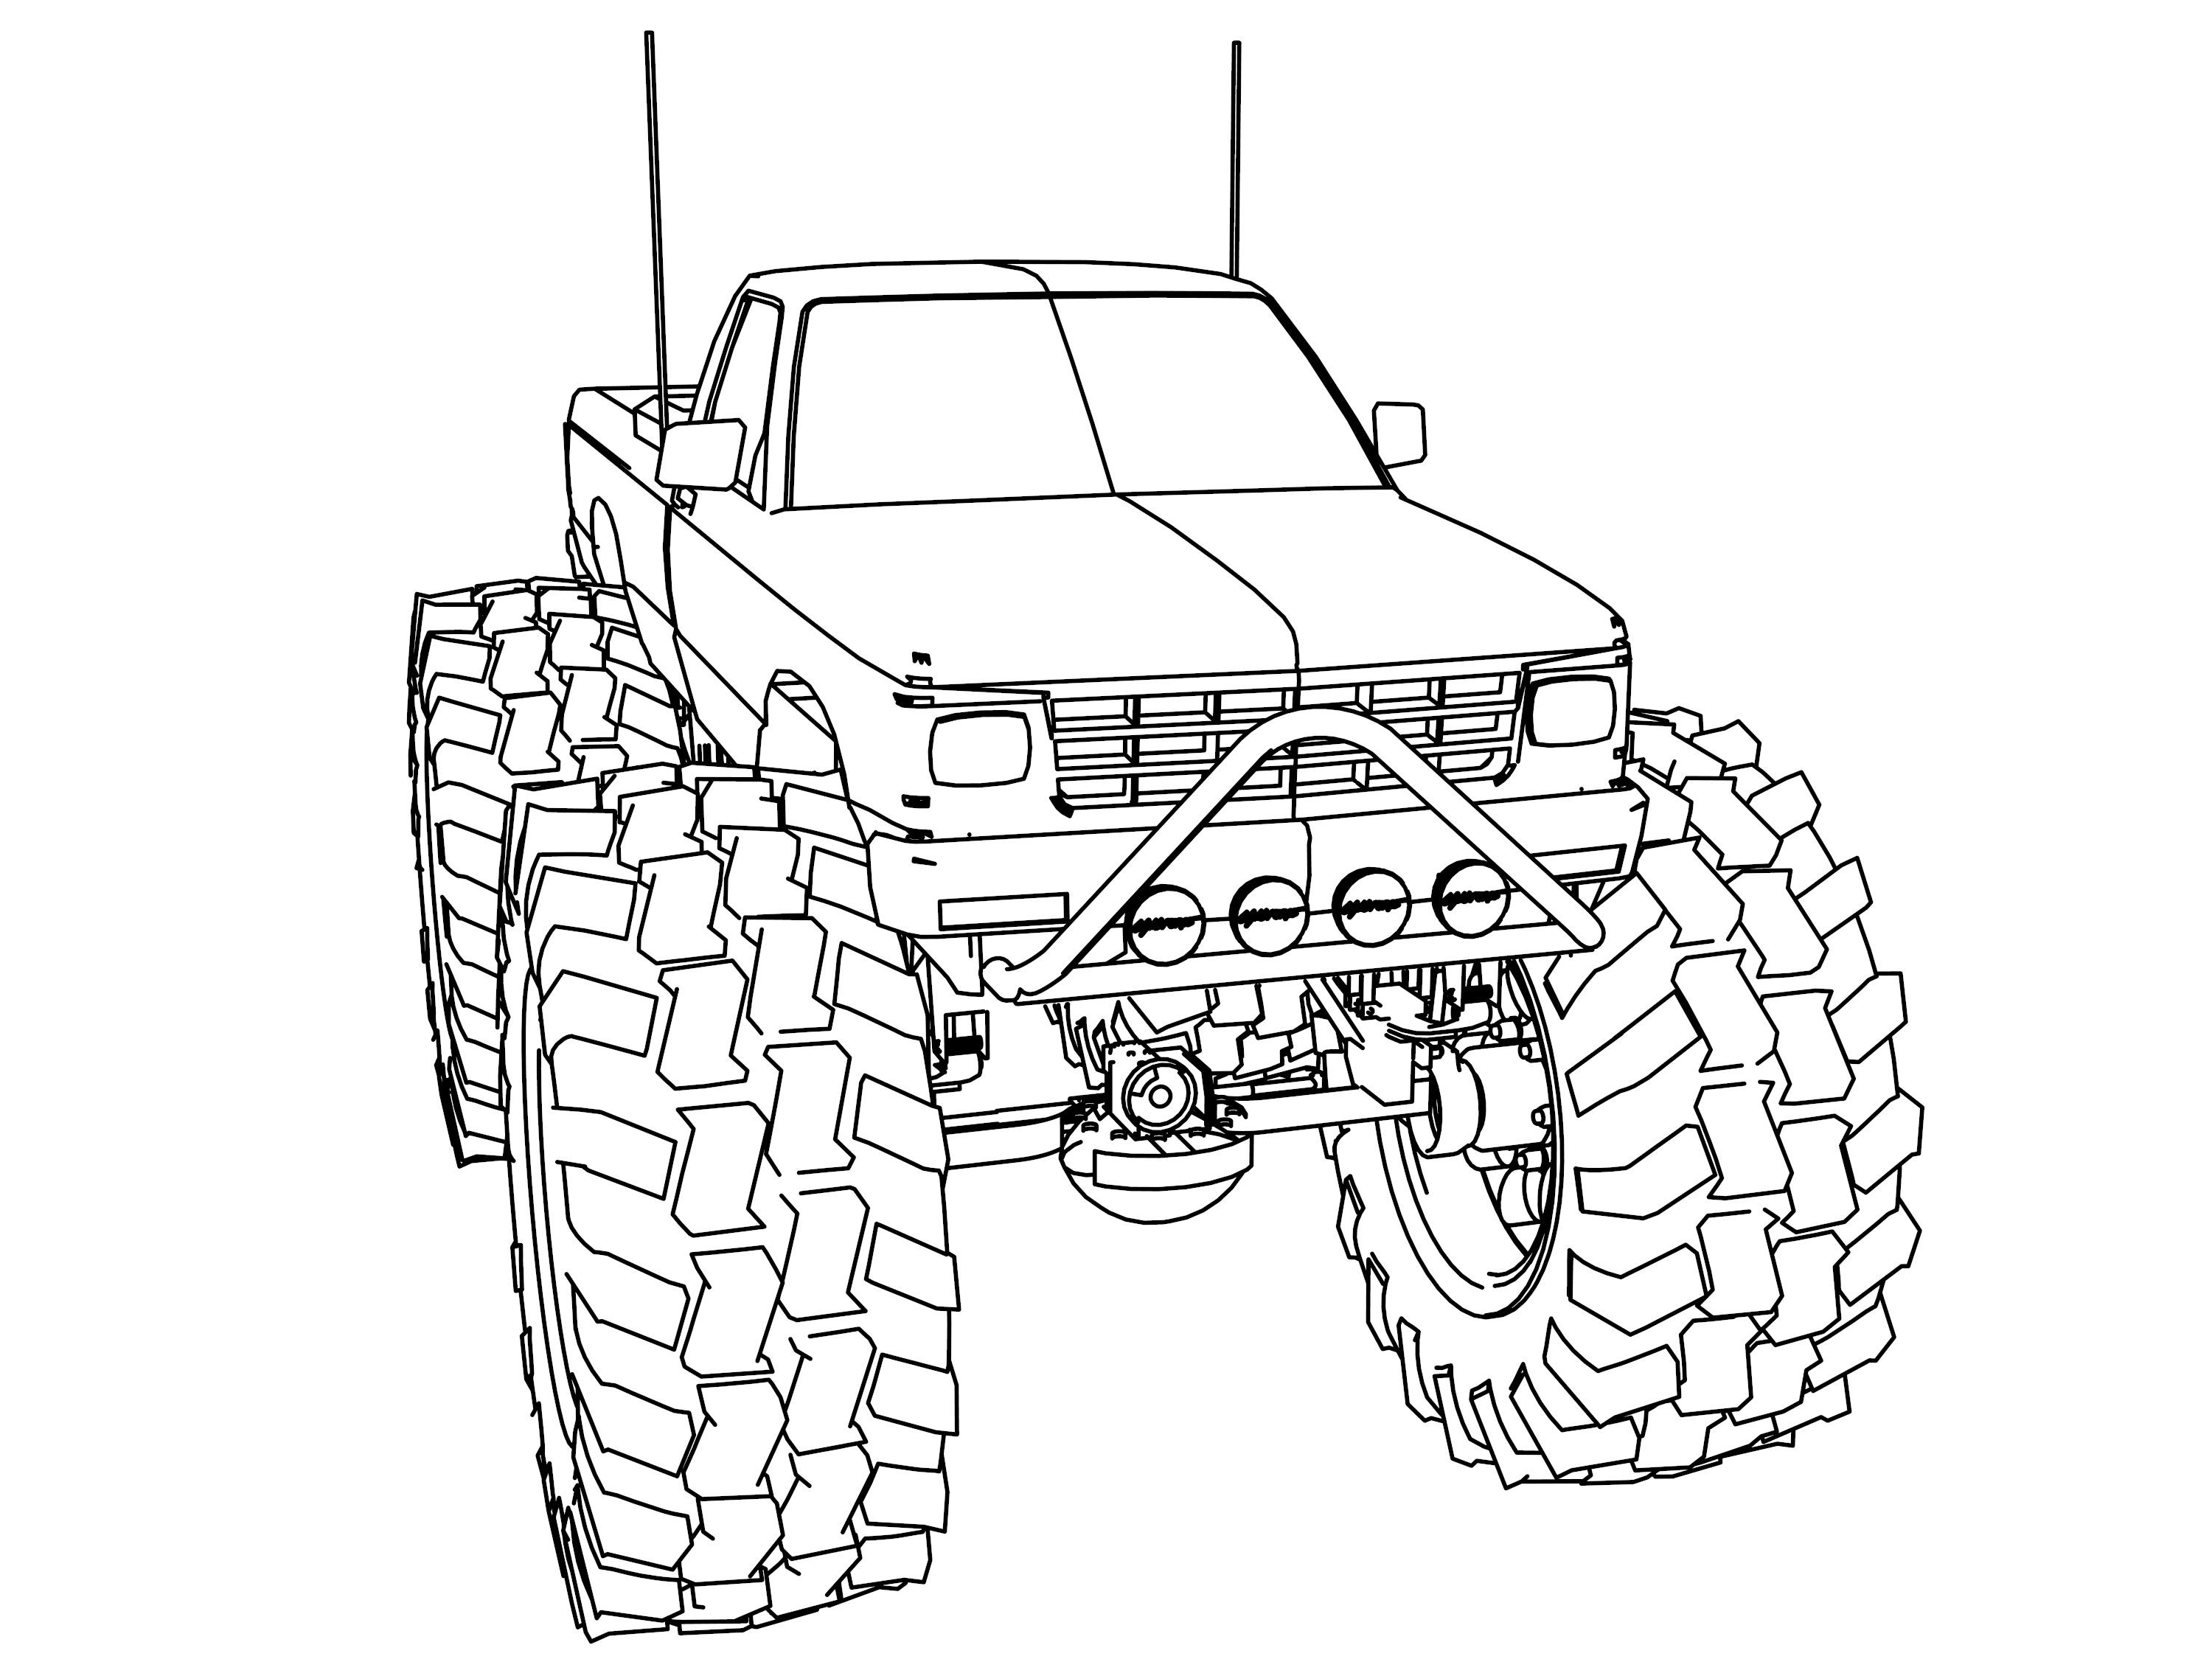 The Best Free Chevy Drawing Images Download From 657 Free